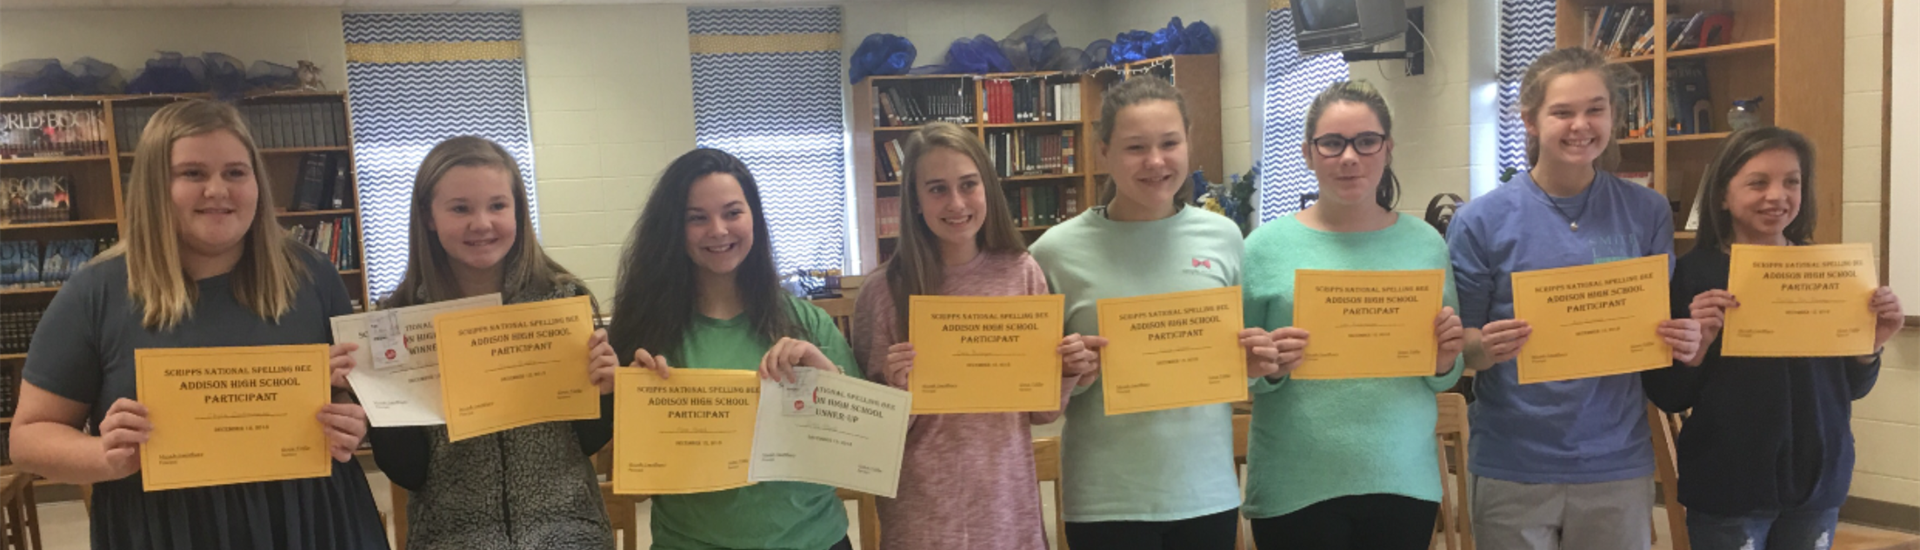 7th and 8th grade classroom spelling bee winners